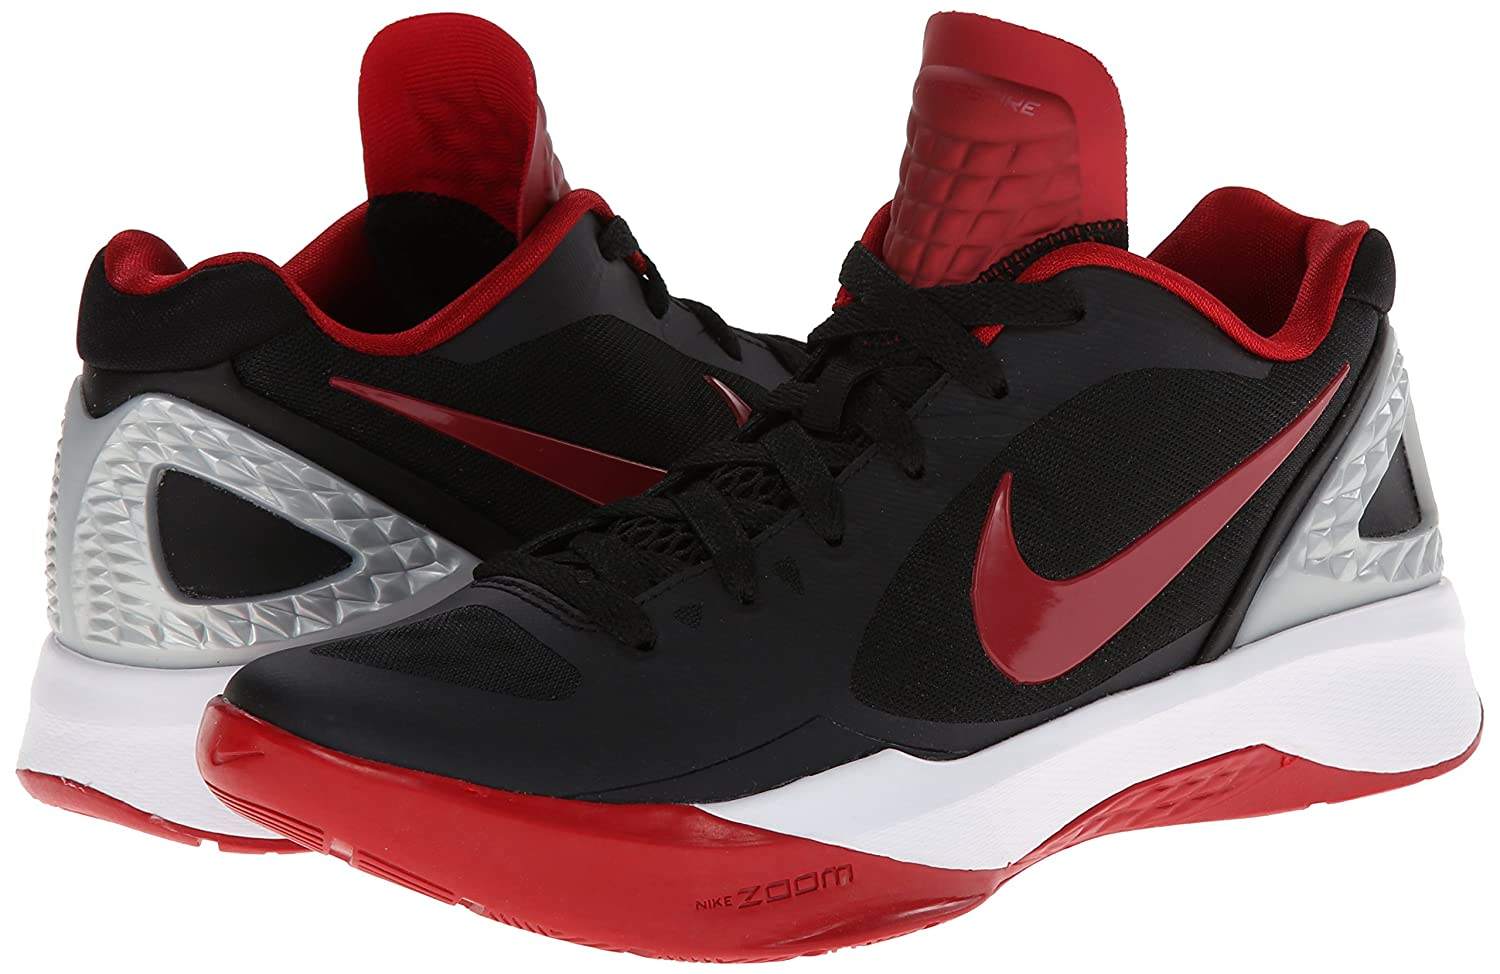 c909fa874ad Nike Womens Hyperspike Volleyball Shoes